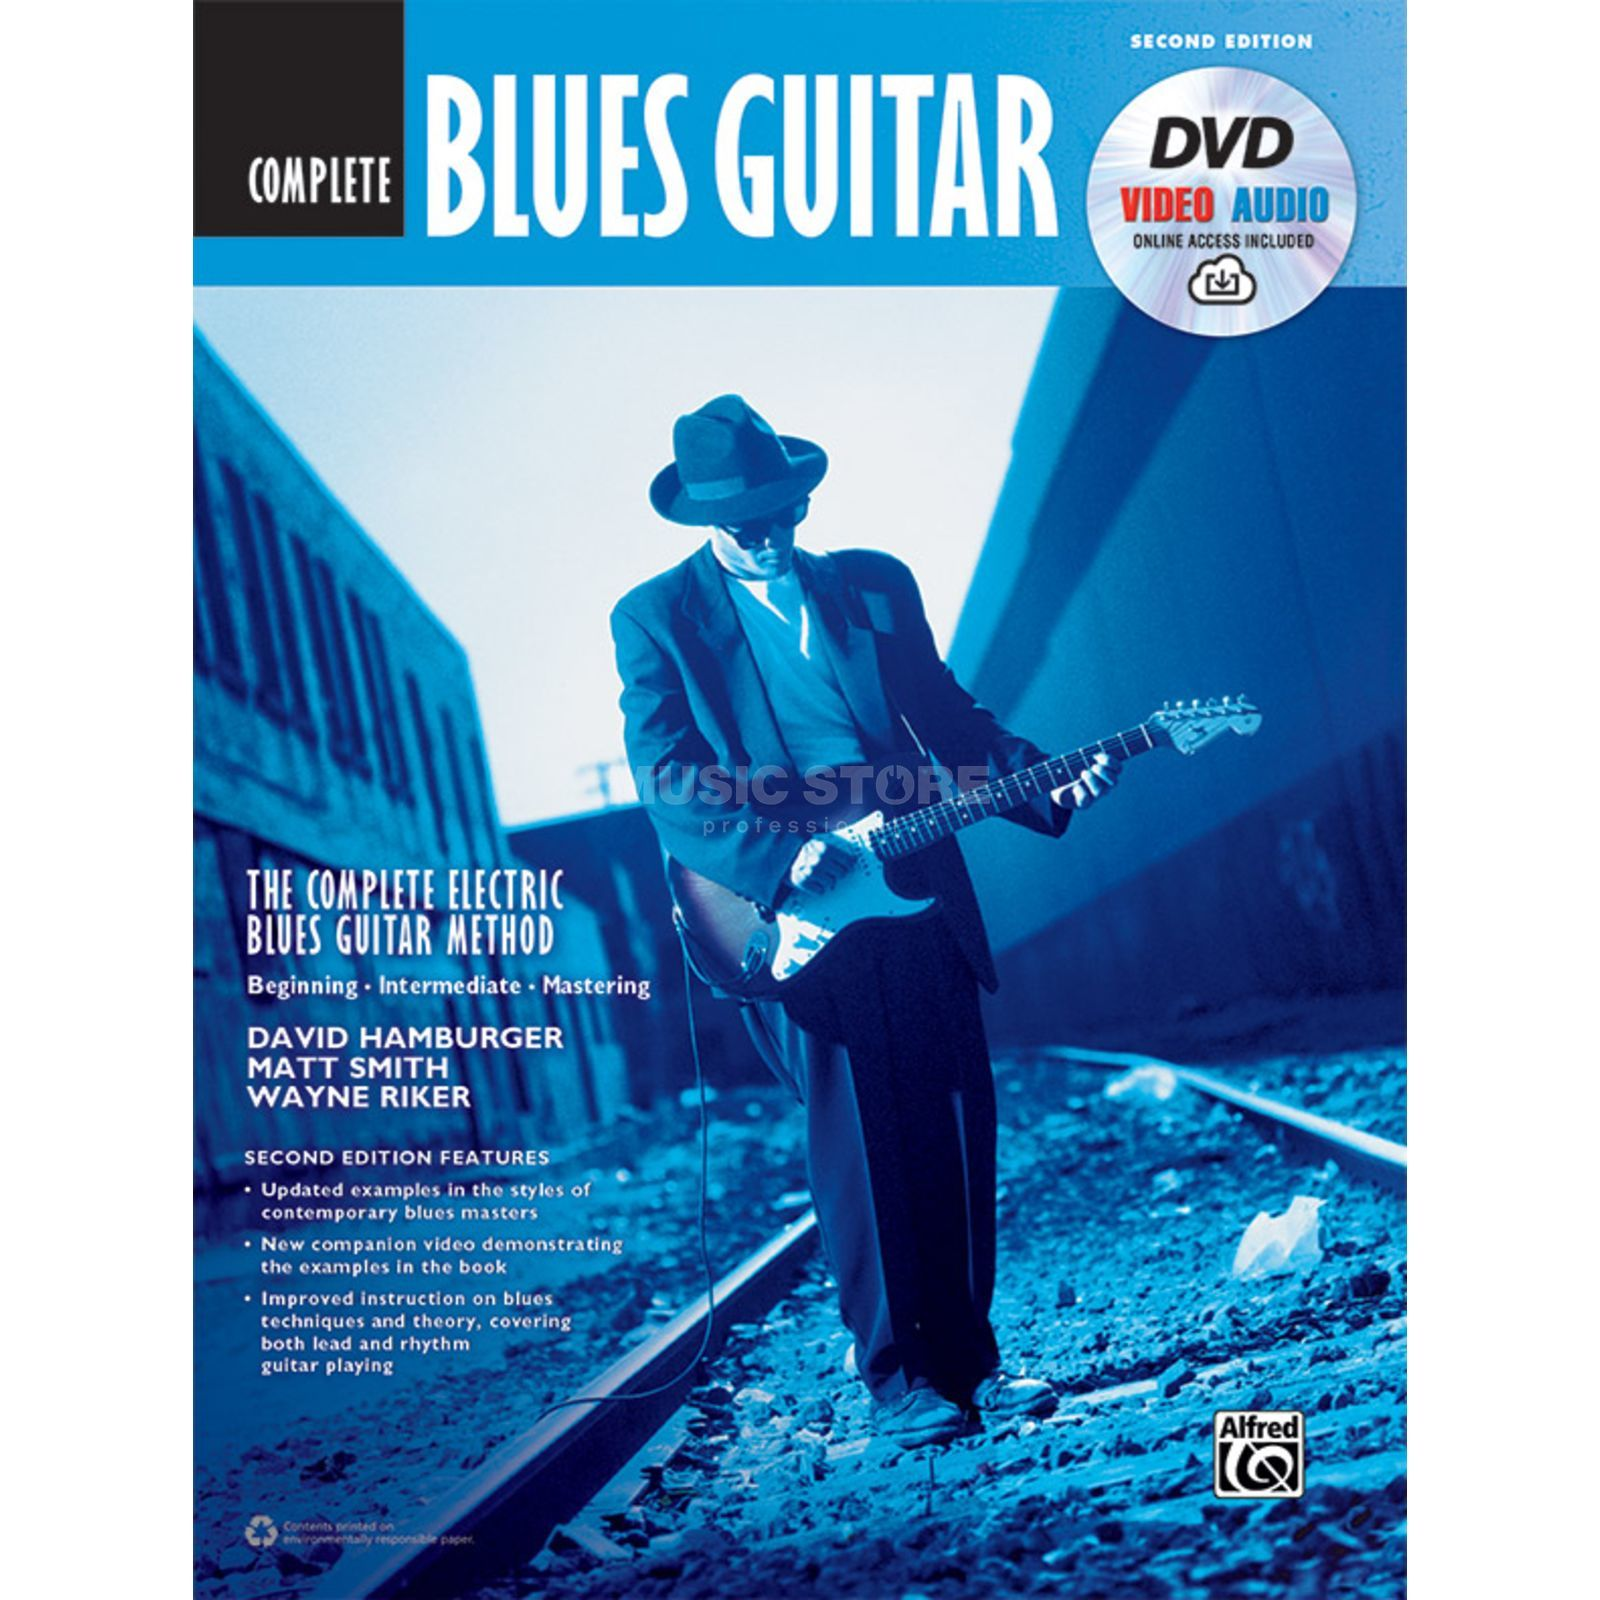 Alfred Music The Complete Blues Guitar Method: Complete Edition (Second Edition) Produktbillede